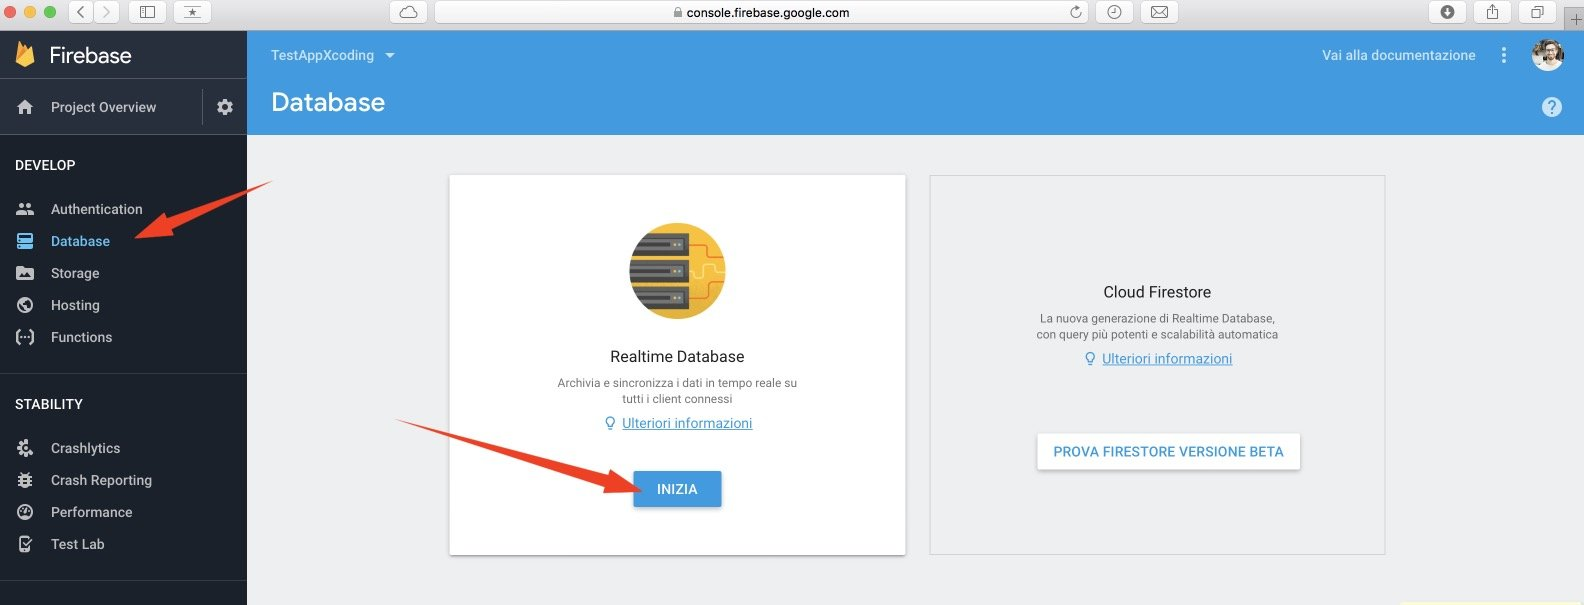 creare-il-primo-database-realtime-con-firebase